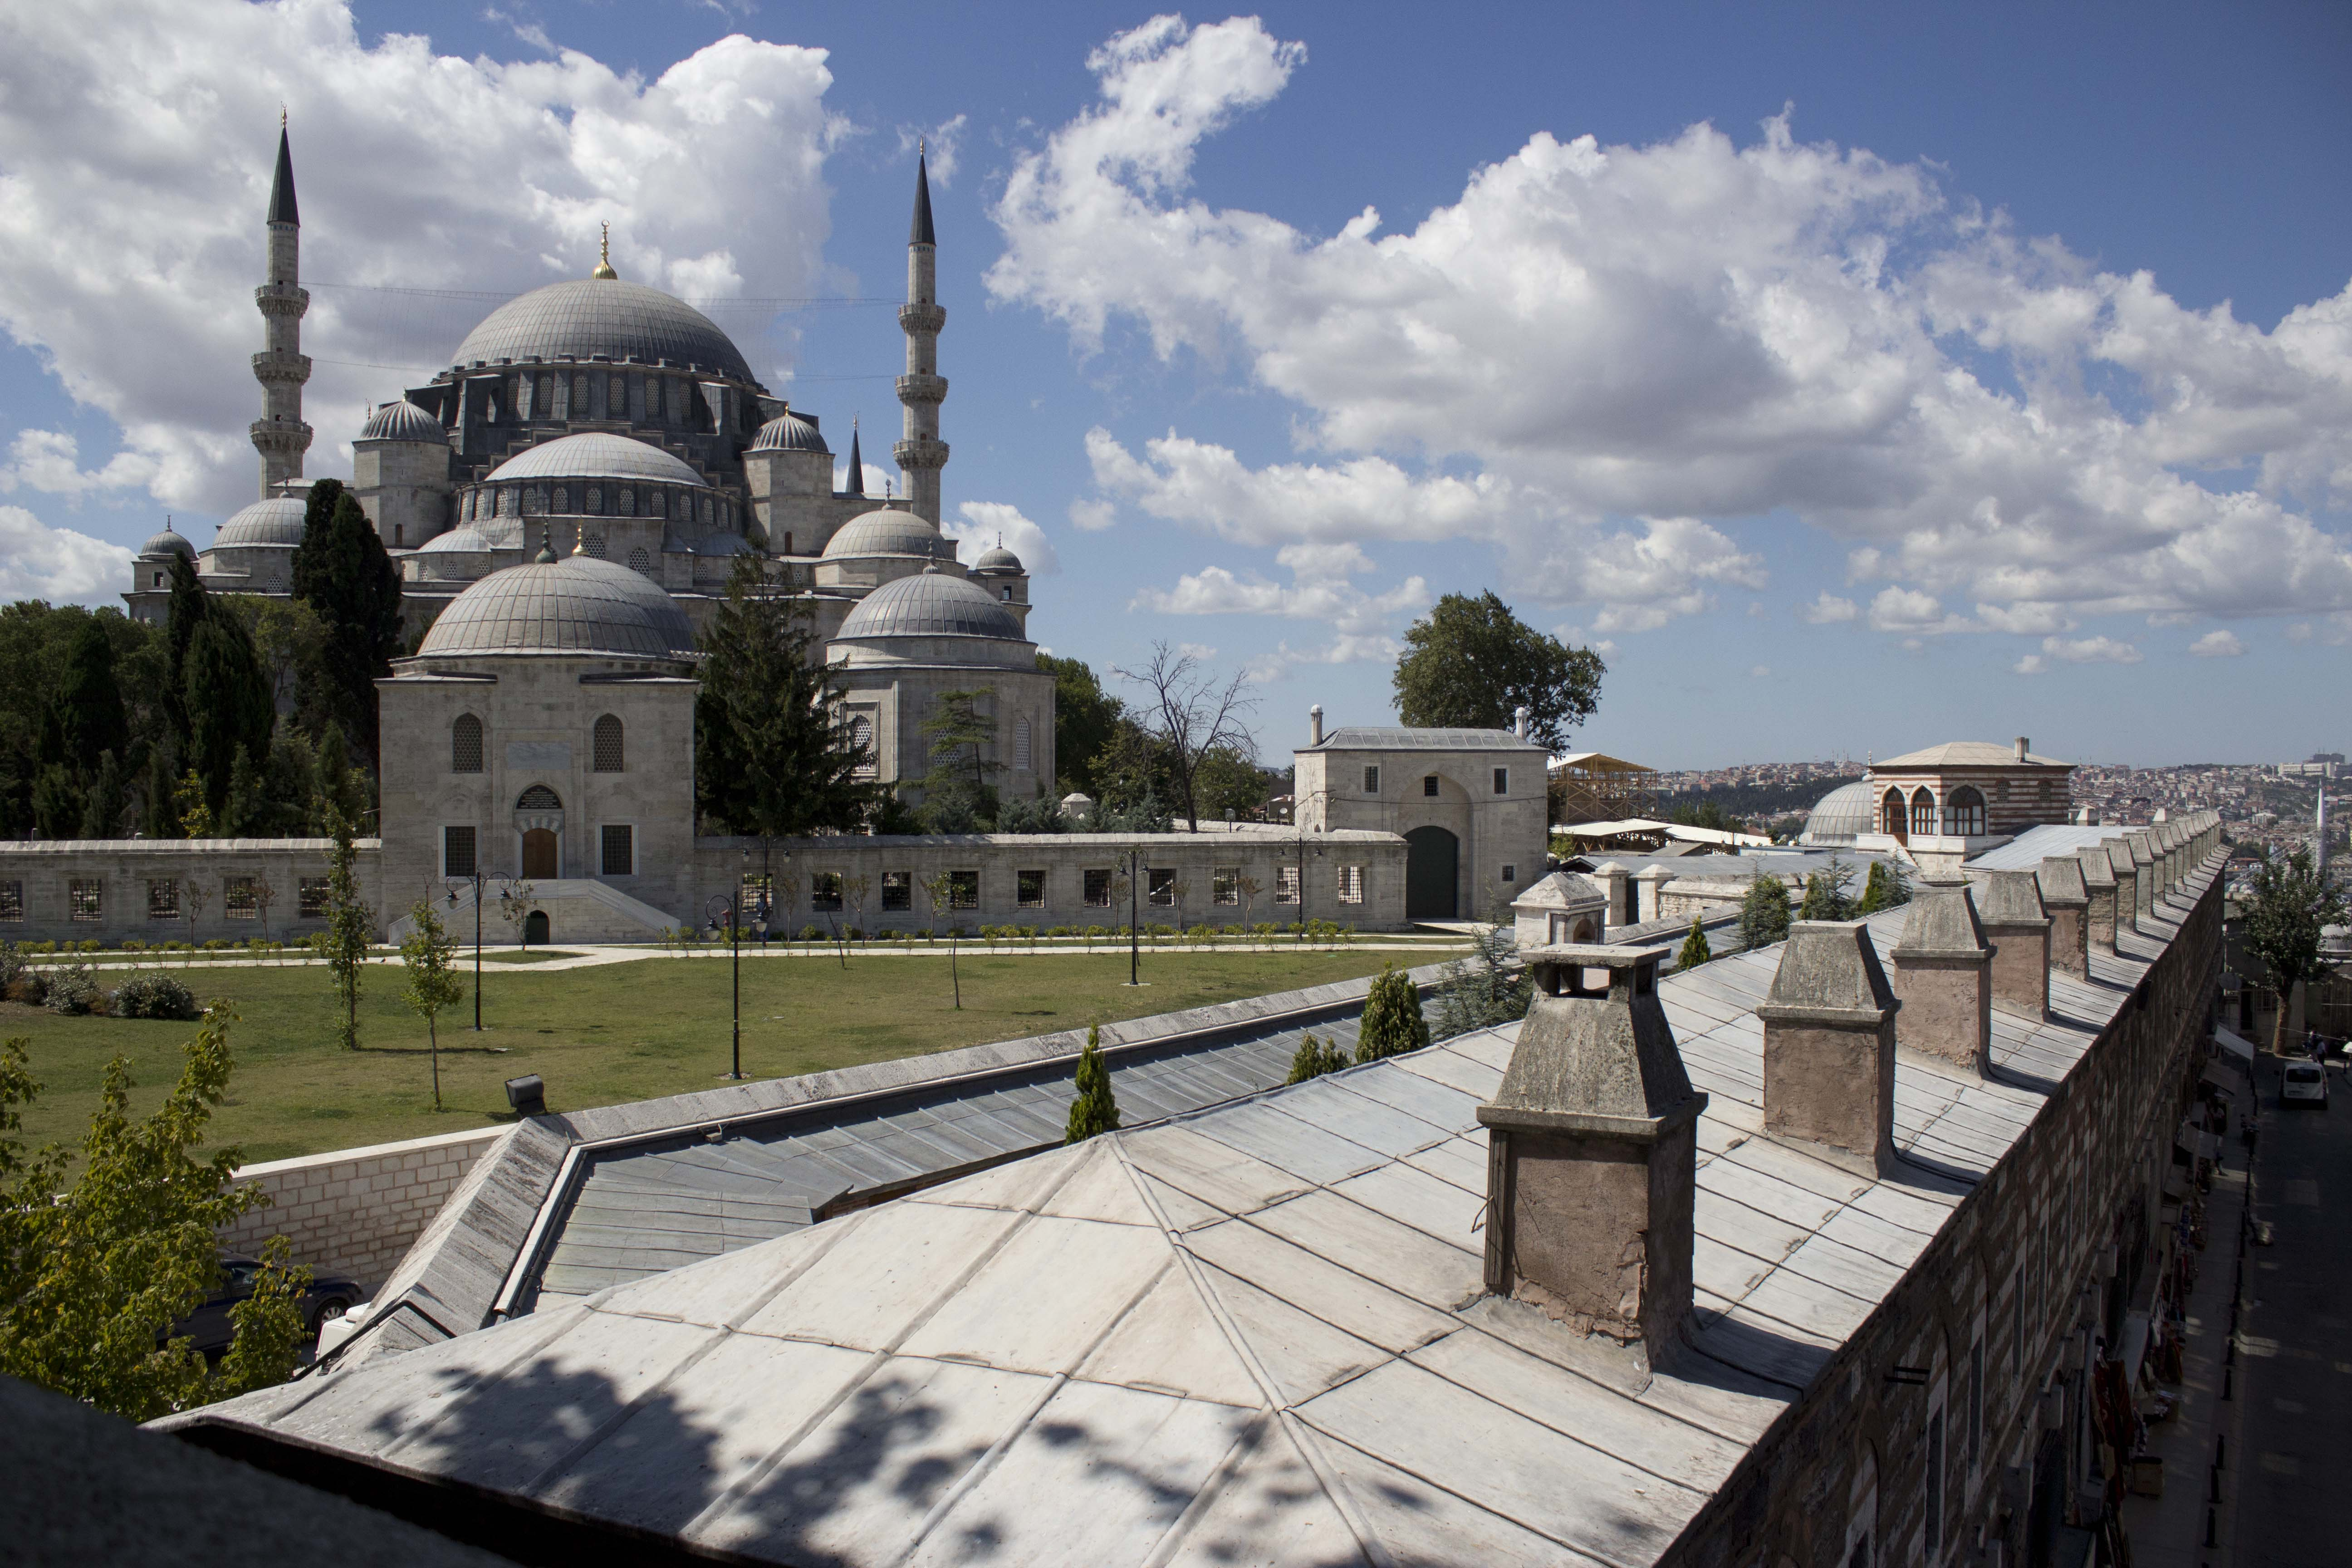 File:Süleymaniye Mosque.jpg - Wikimedia Commons